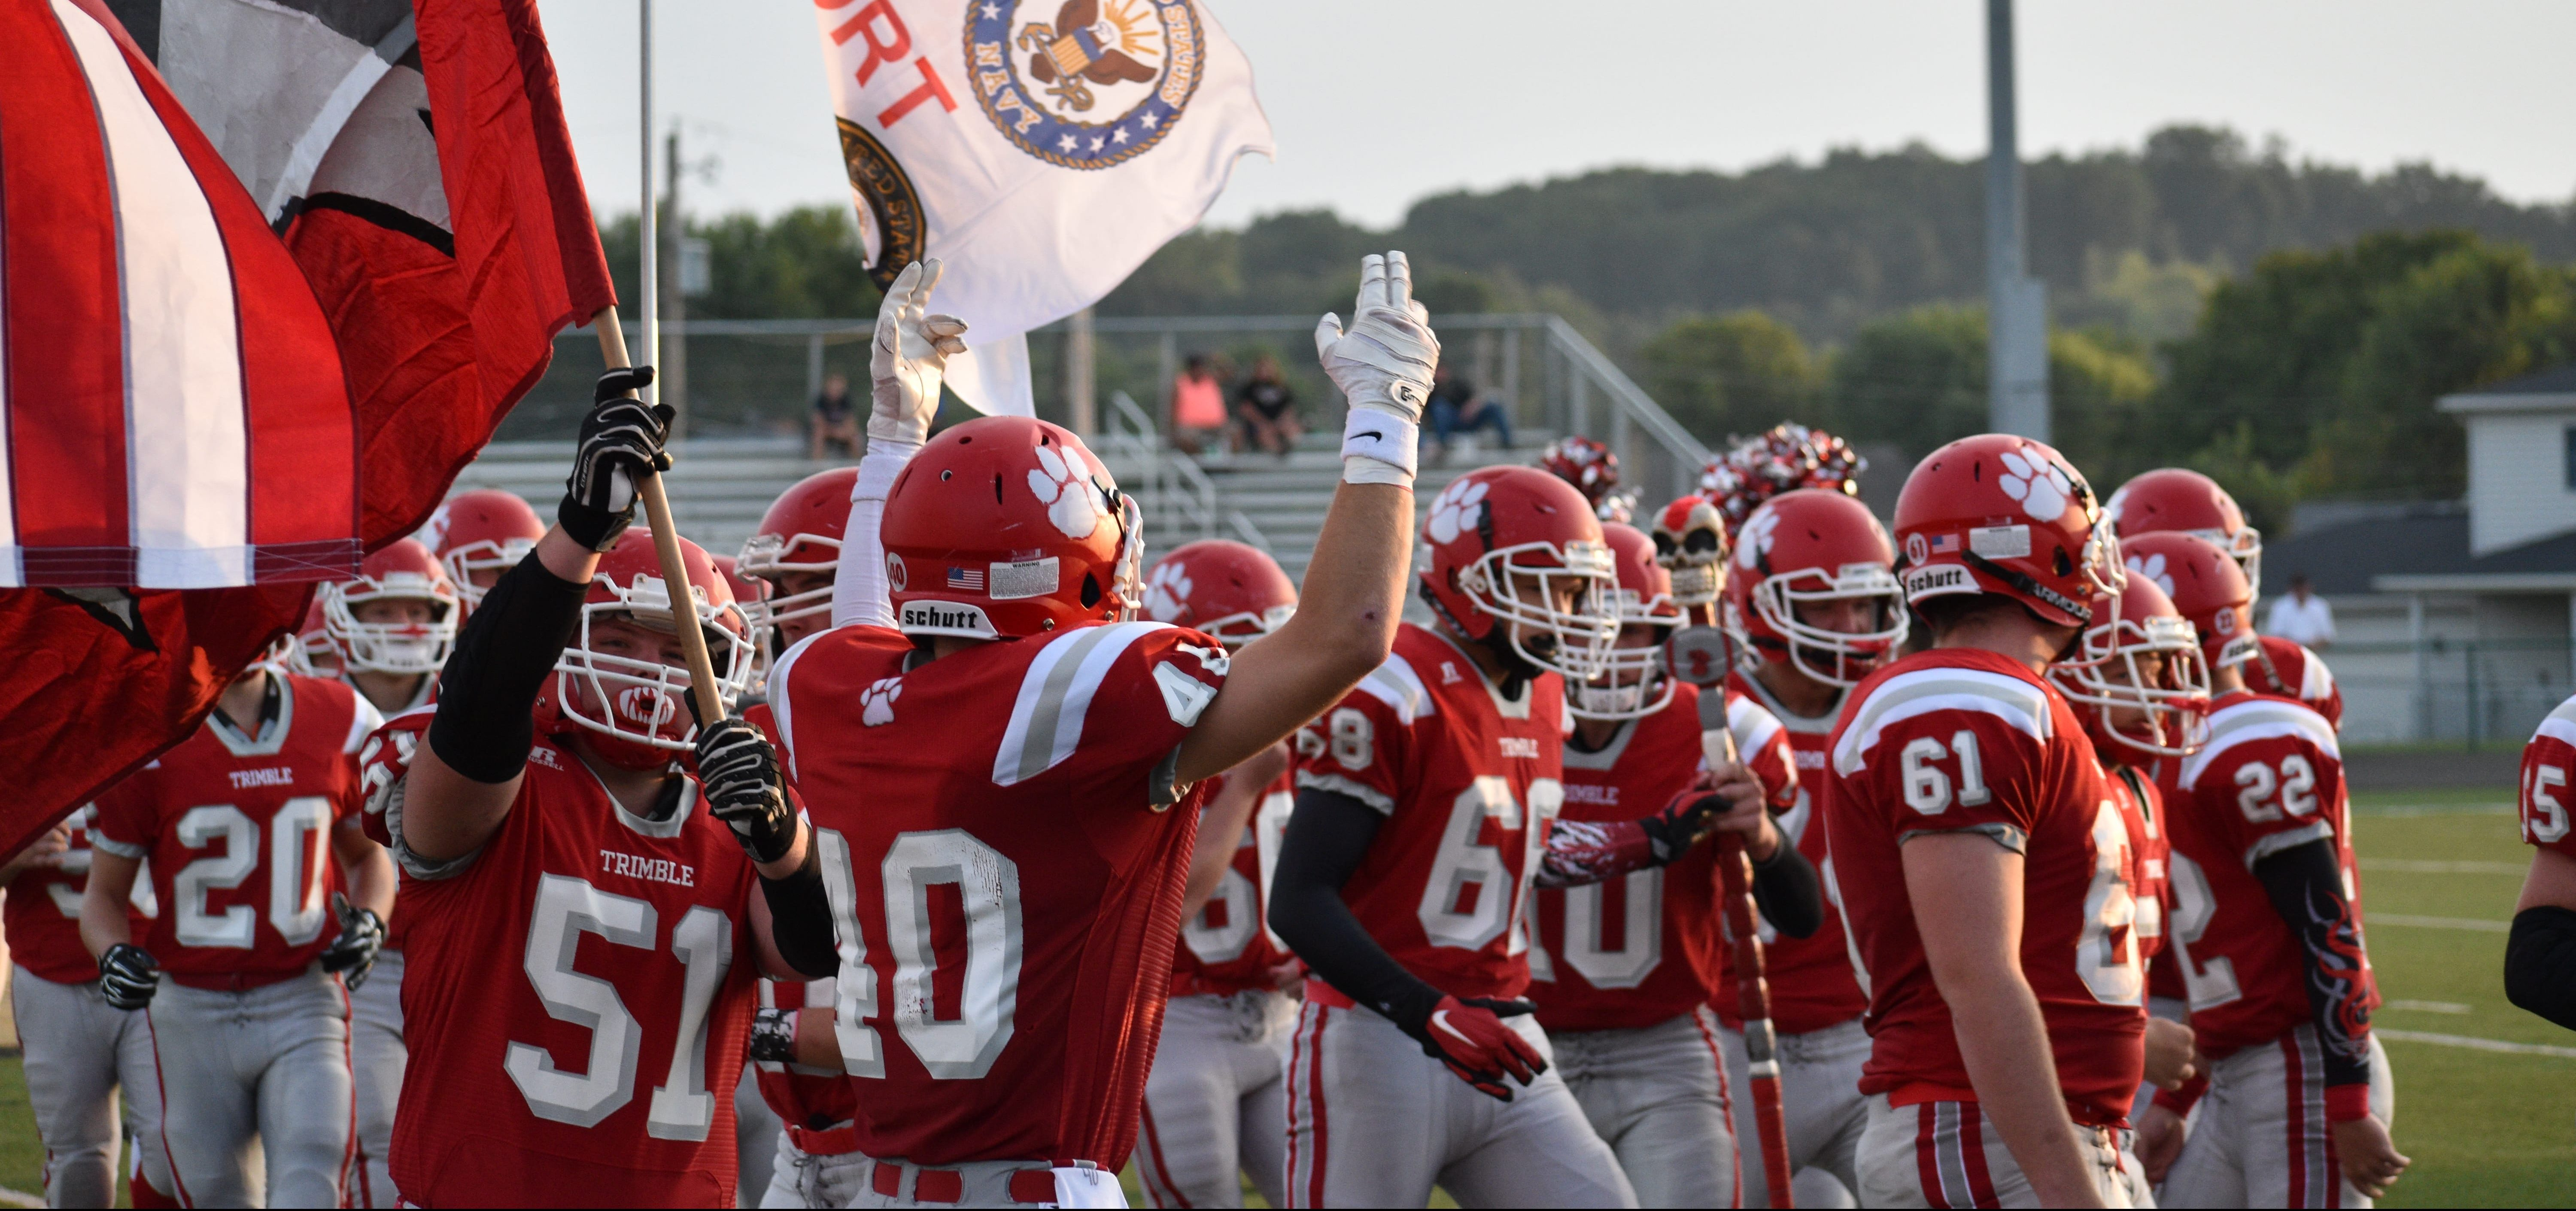 Trimble players rally before a game.